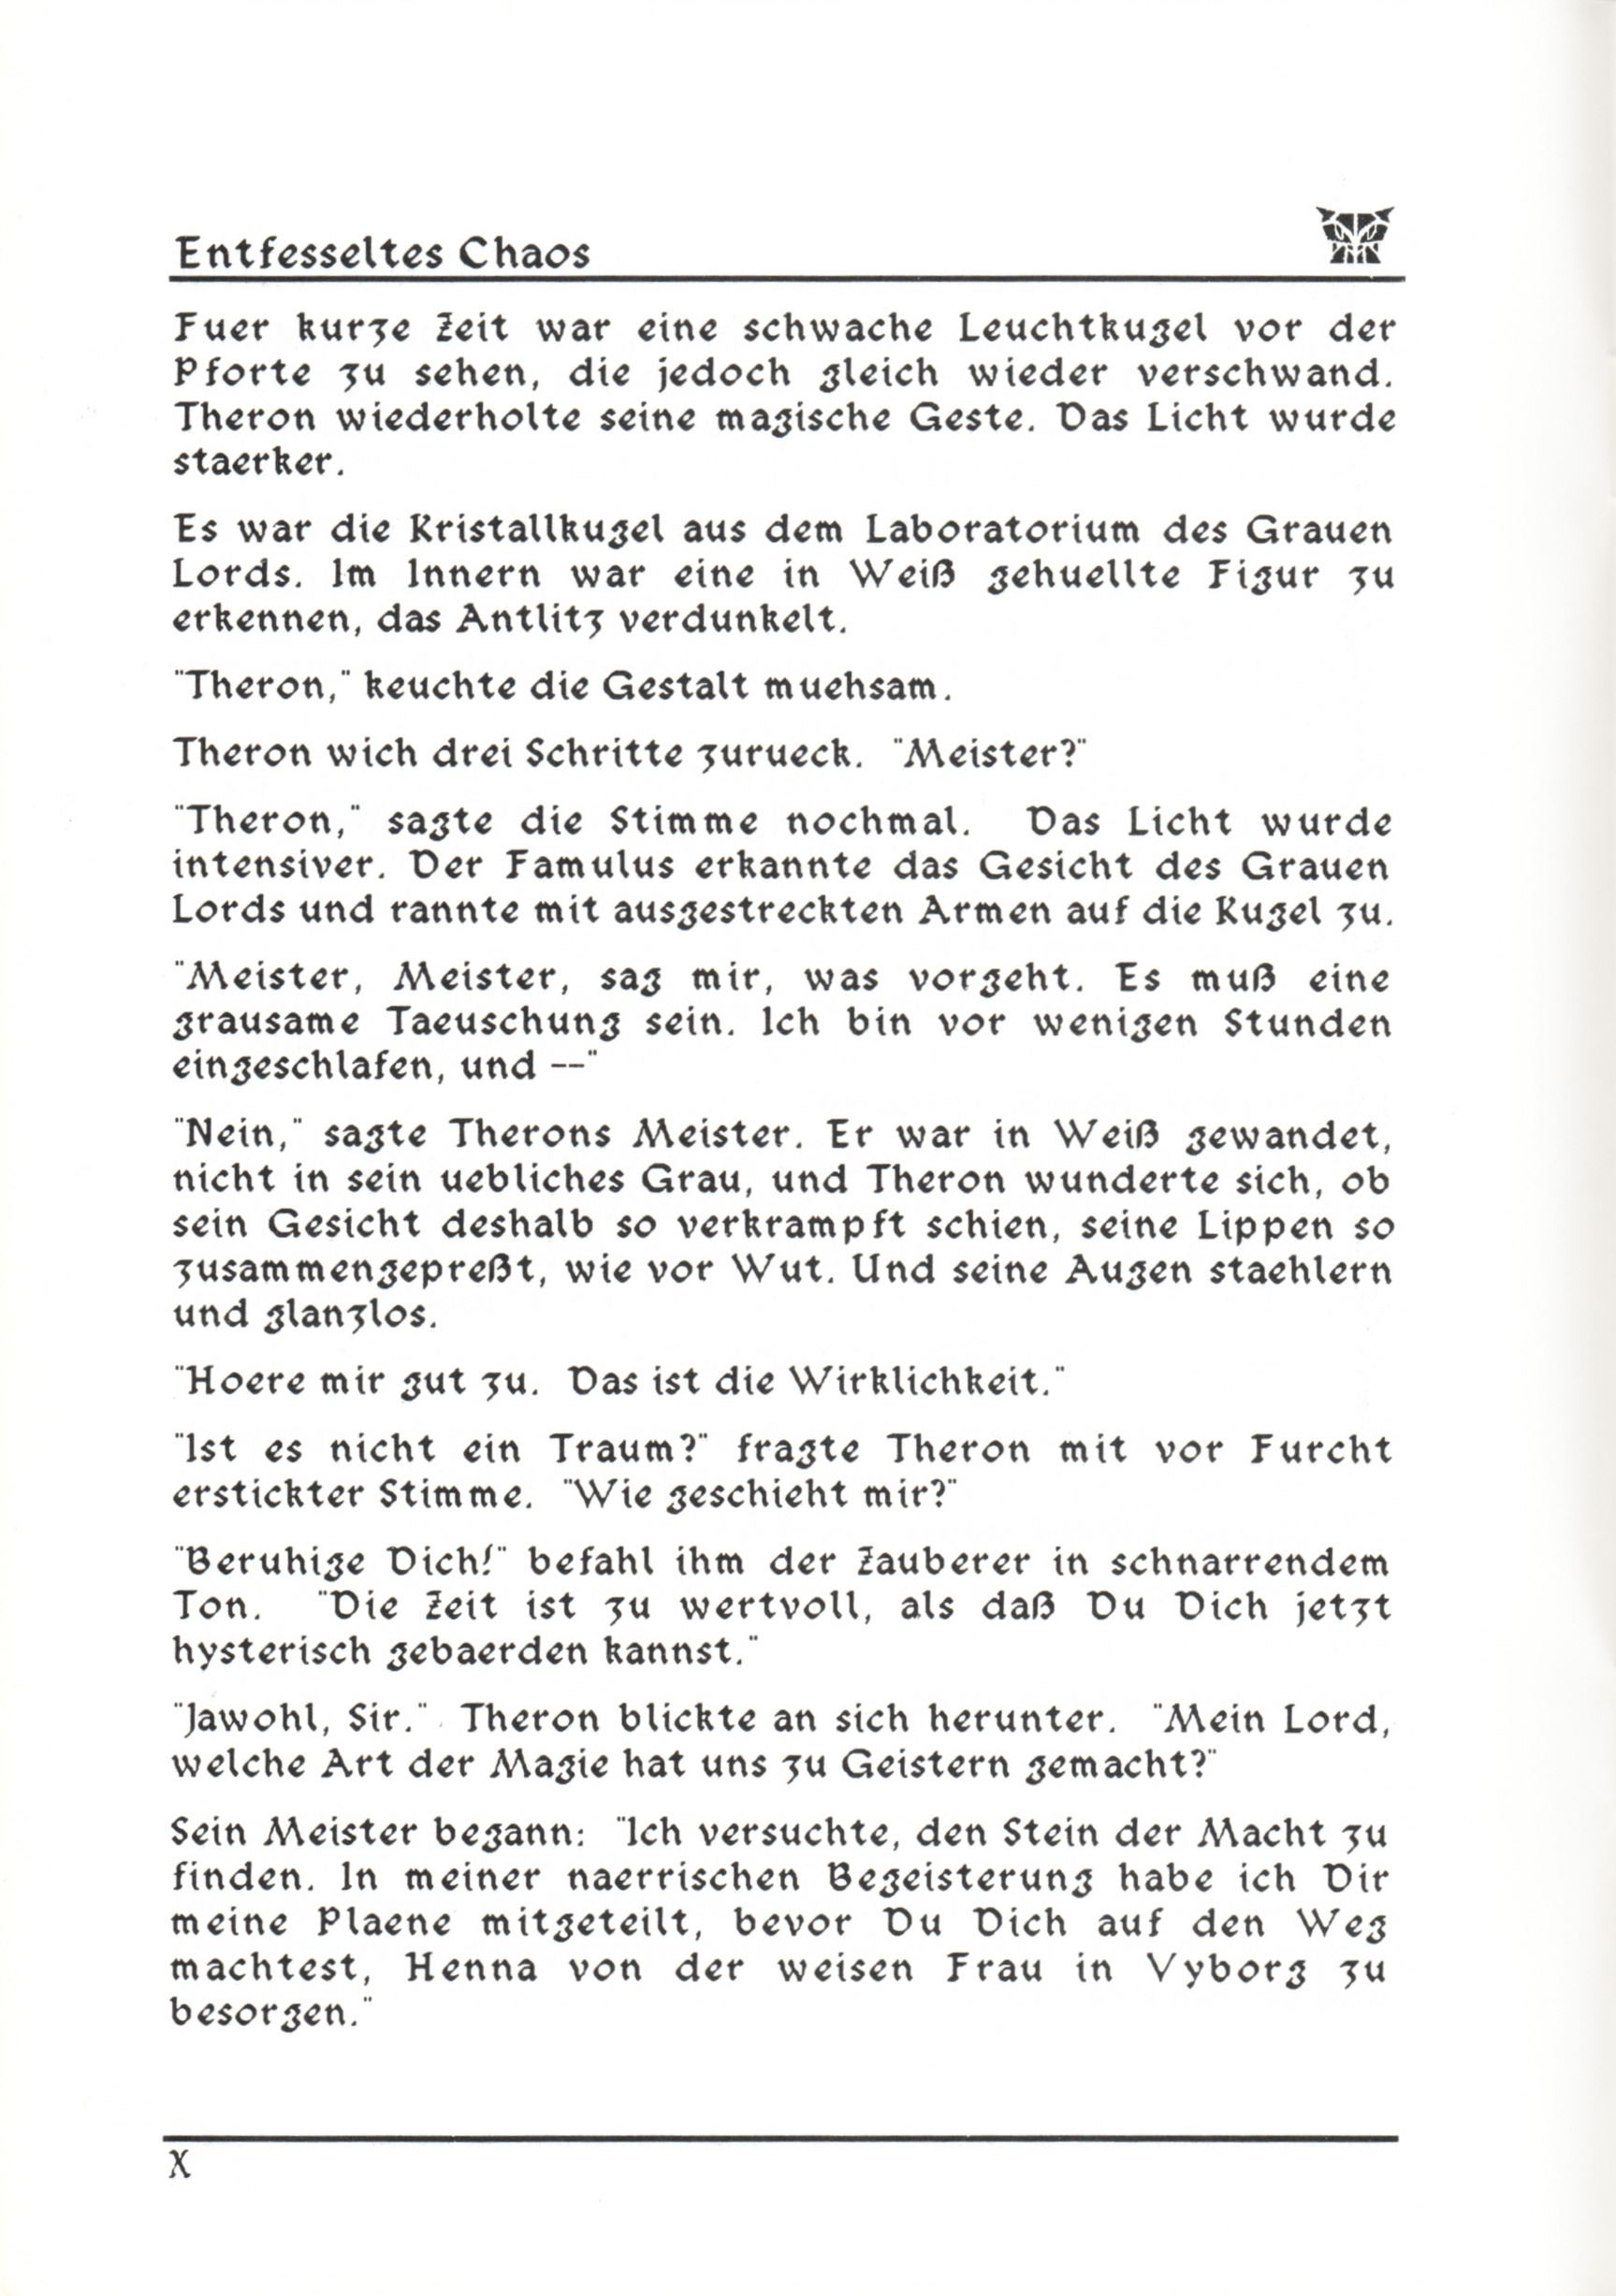 Game - Dungeon Master - DE - PC - Psygnosis - Manual - Page 014 - Scan